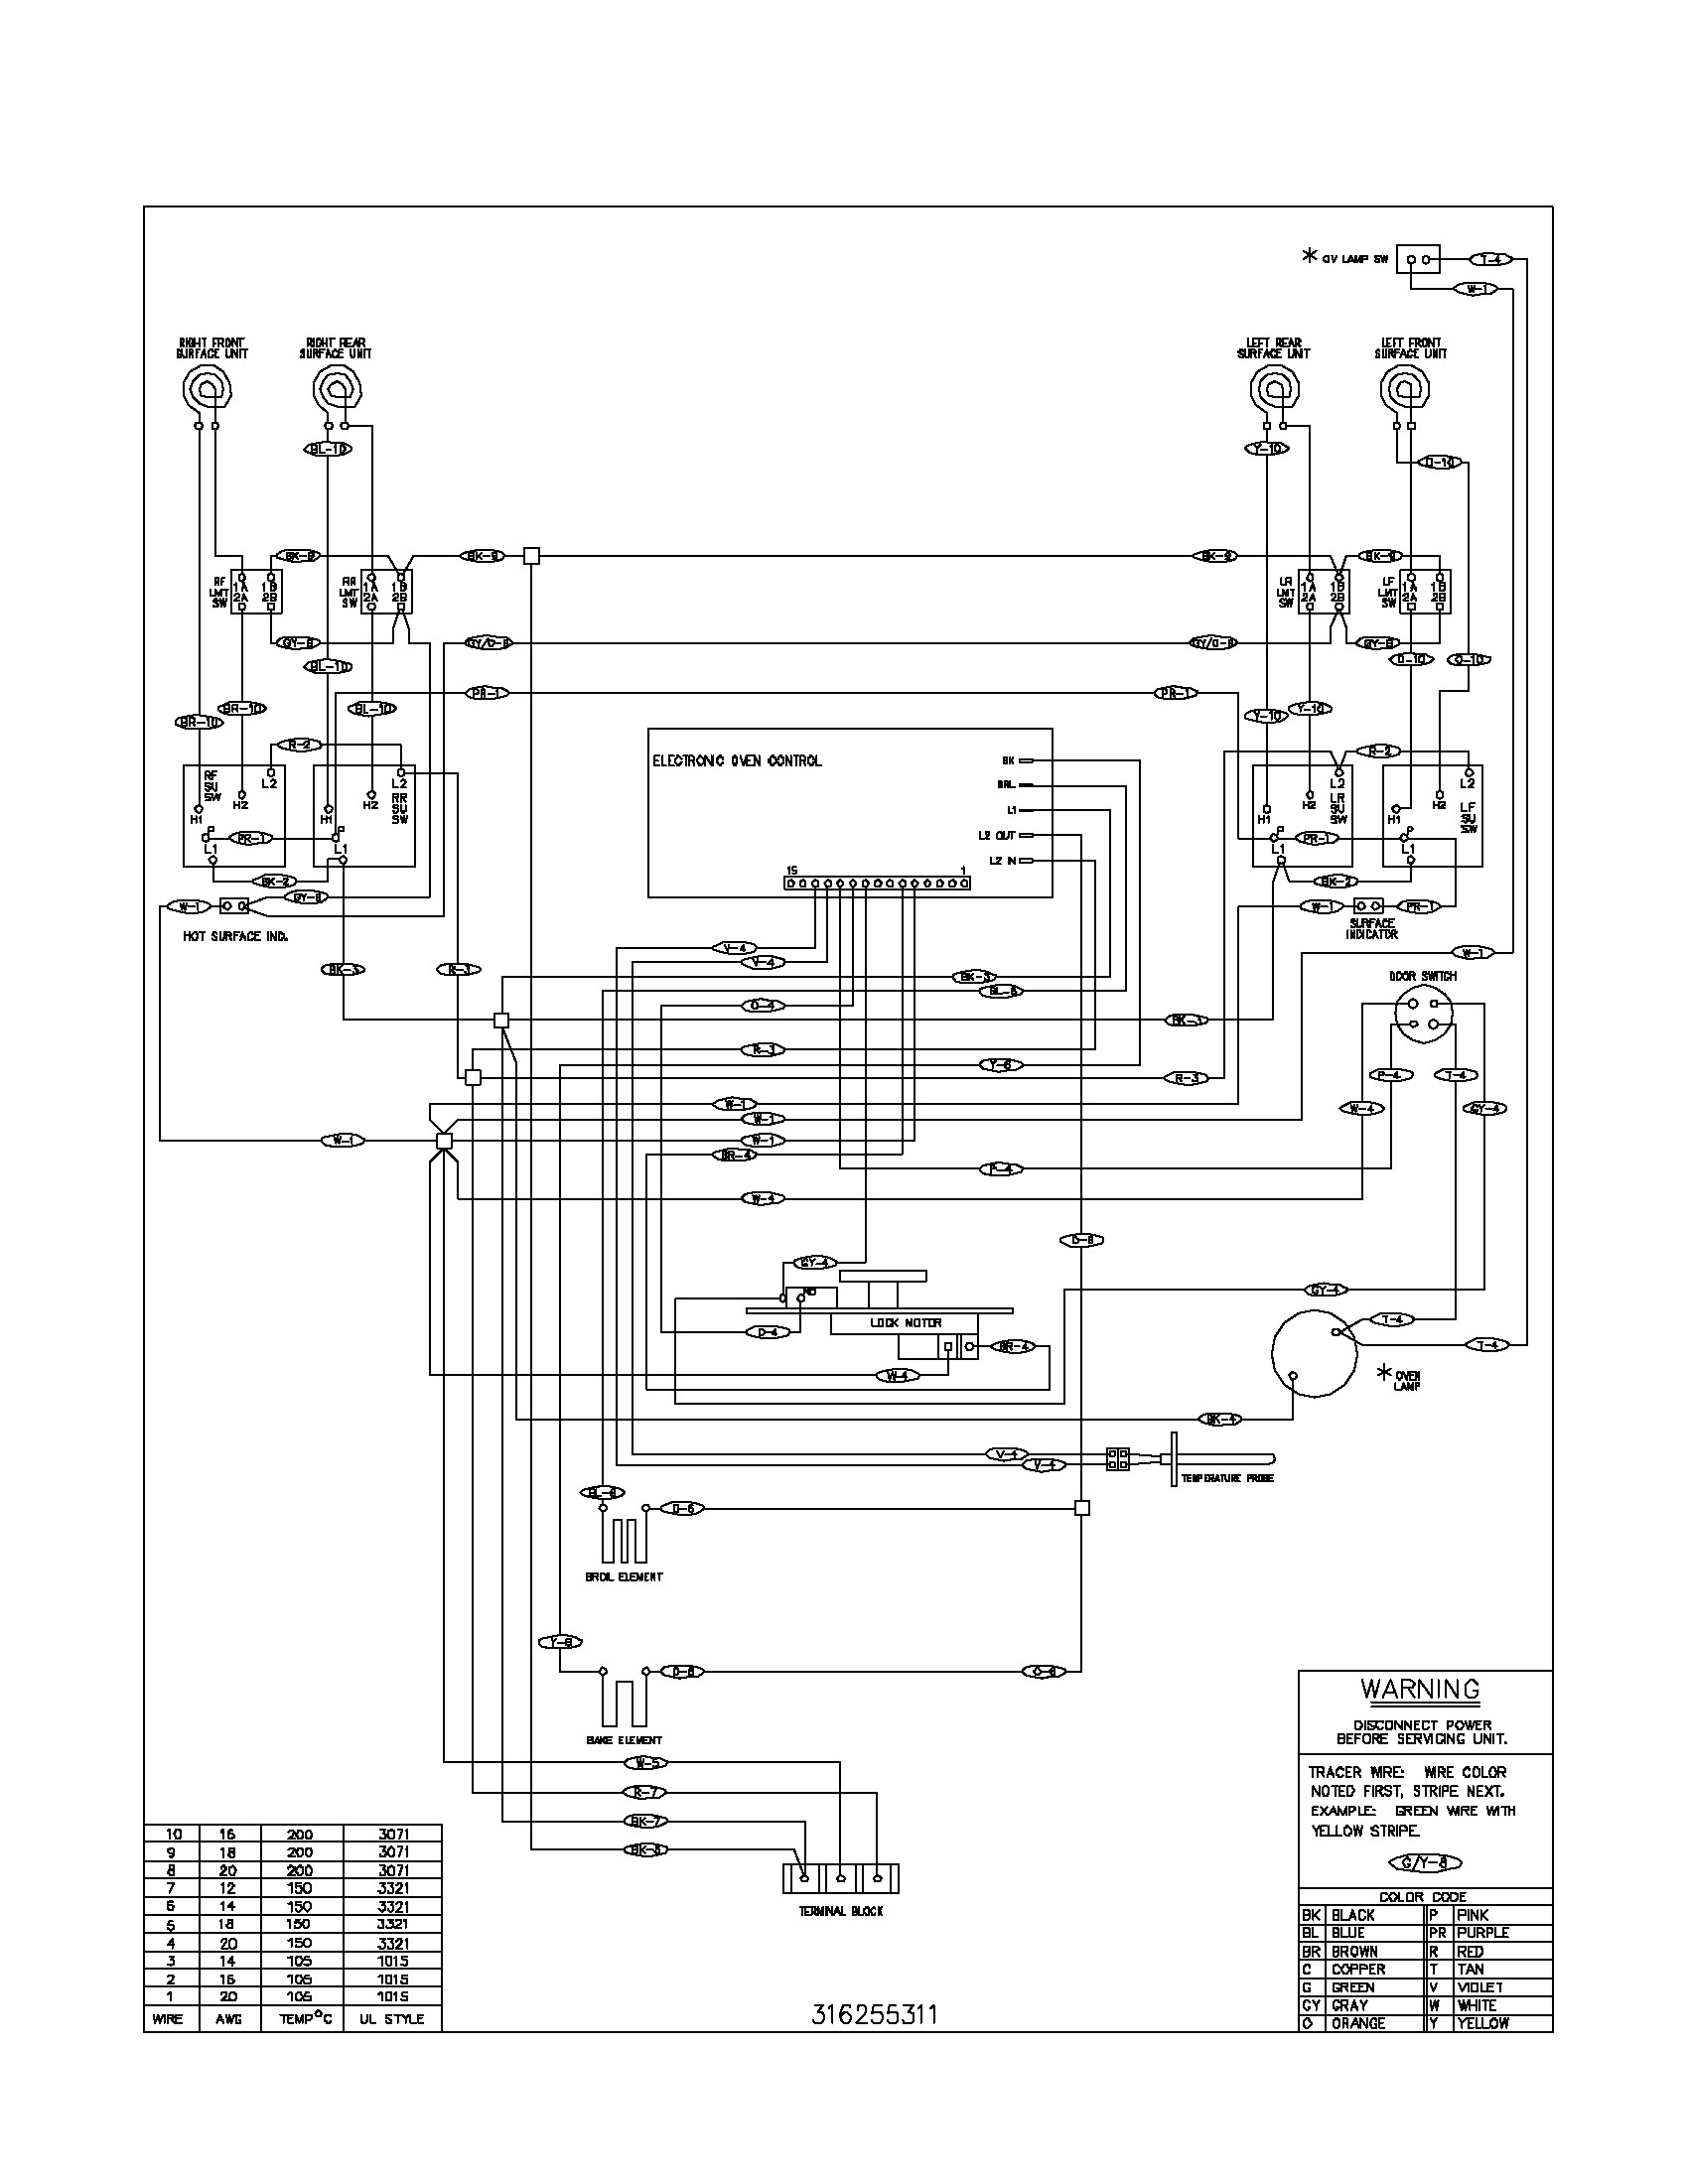 viking oven thermostat wiring diagram on defrost wiring diagram, oven  plug wiring diagram,